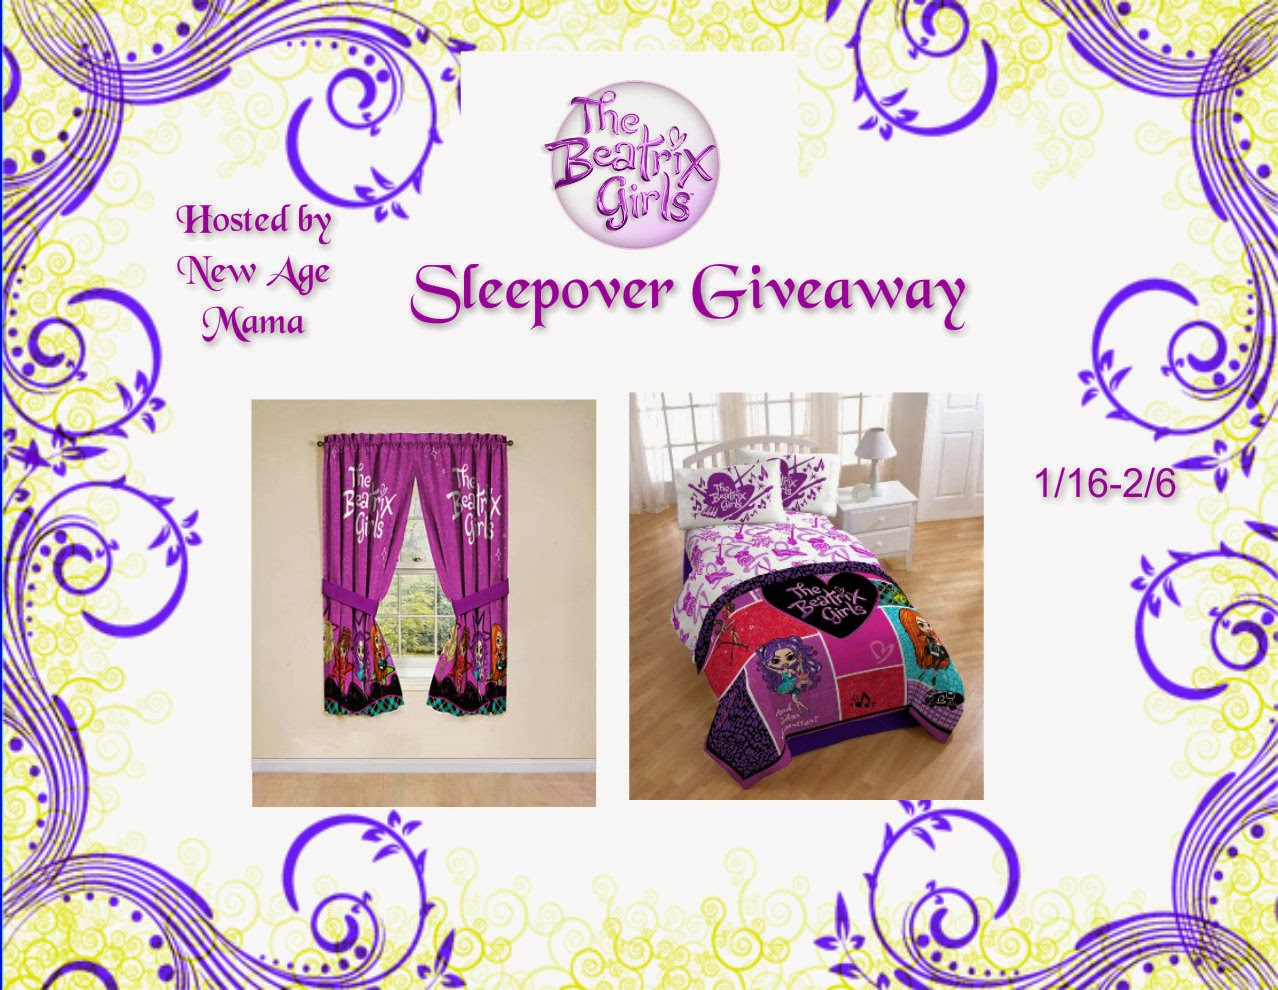 Giveaway: The Beatrix Girls